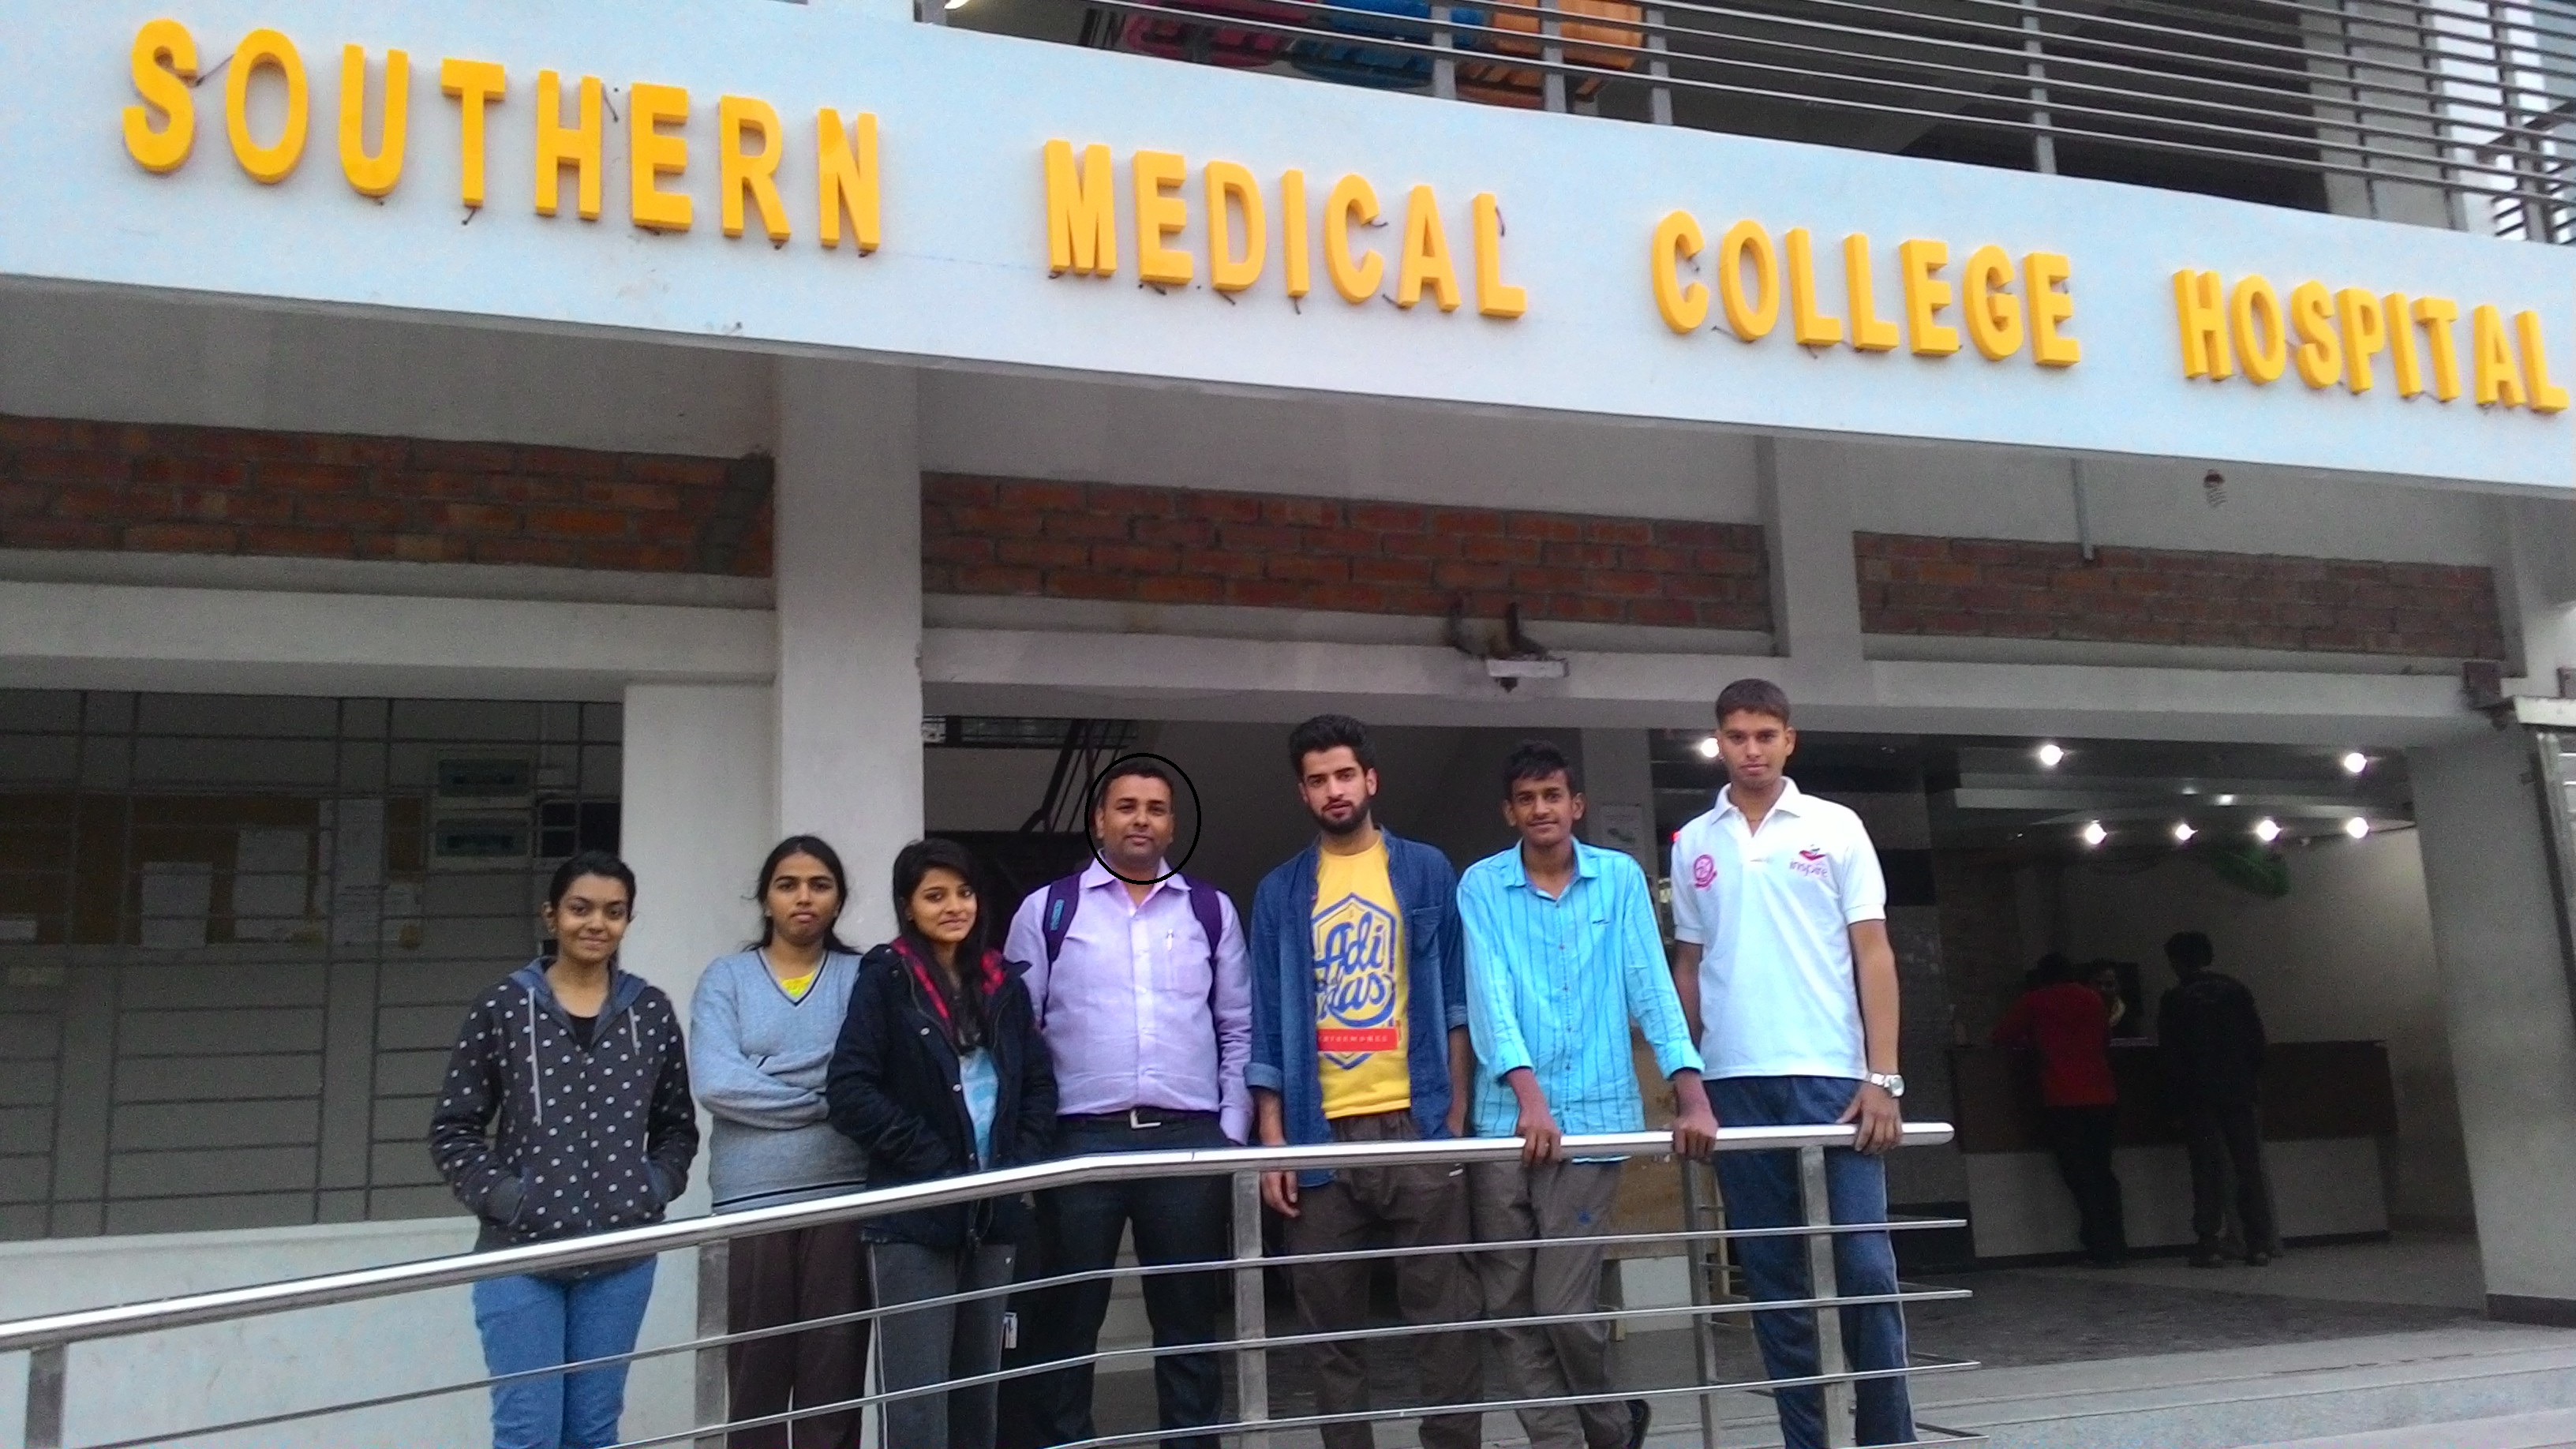 Southern Medical College & Hospital, Chittagong – MBBS in